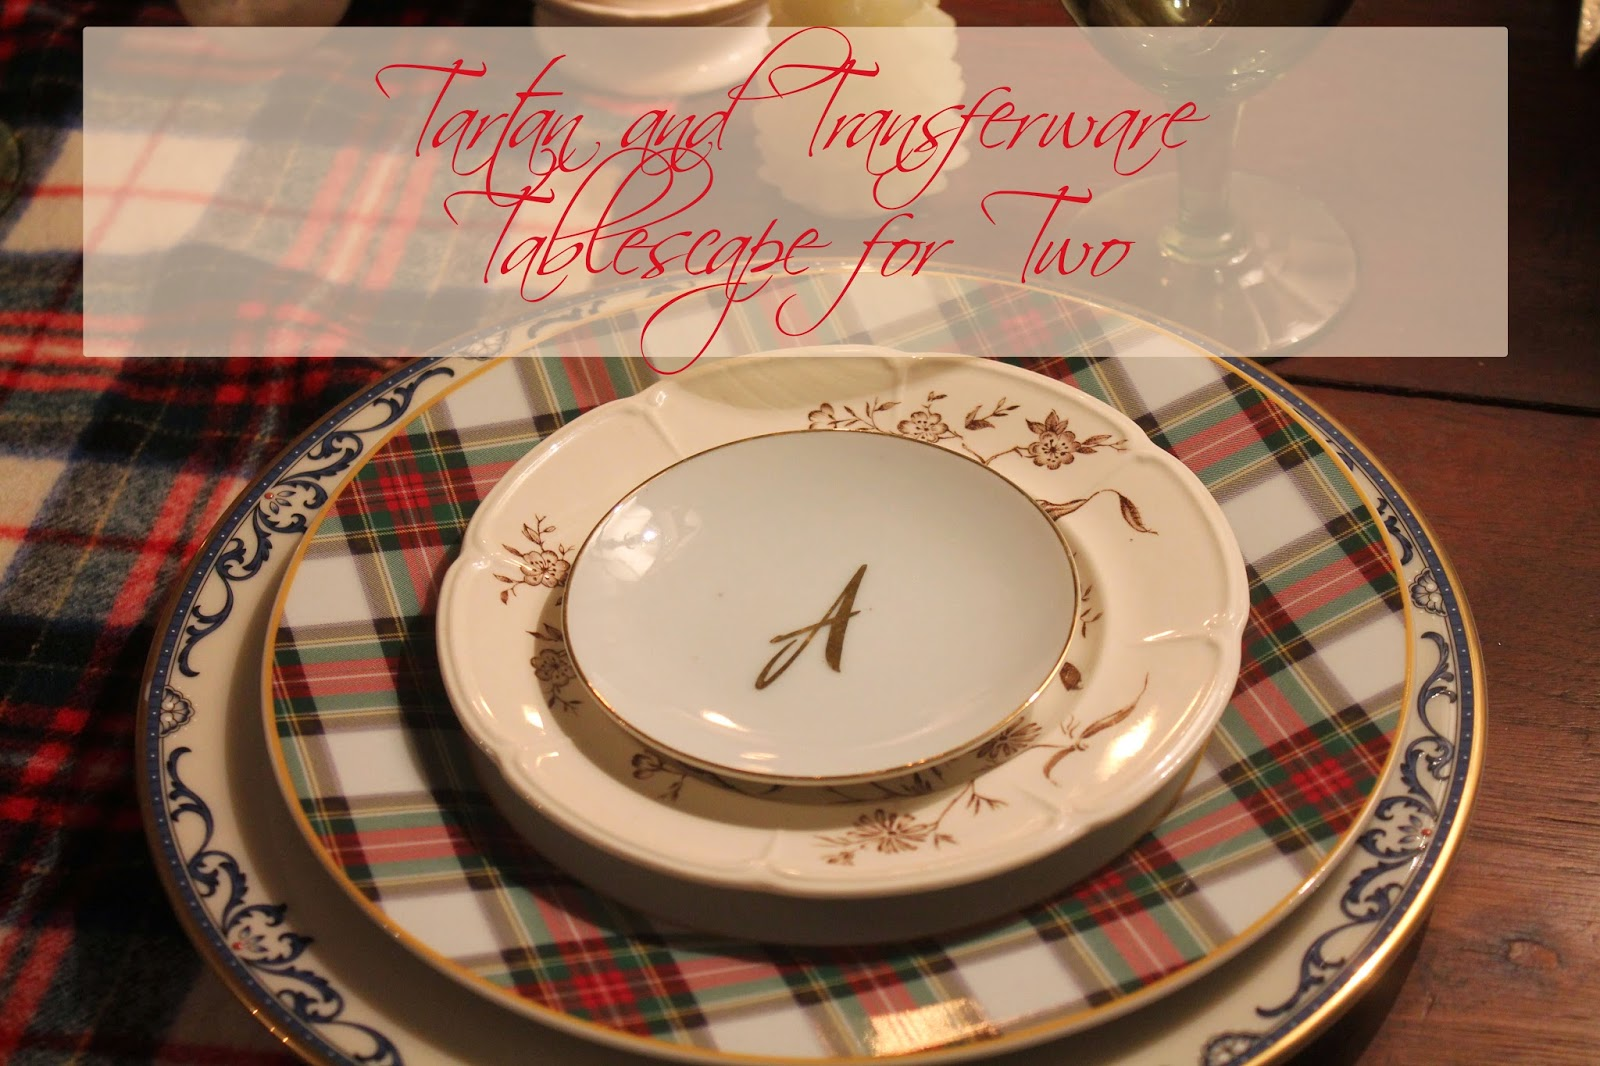 Beautiful tartan and transferware tablescape, the altered past blog